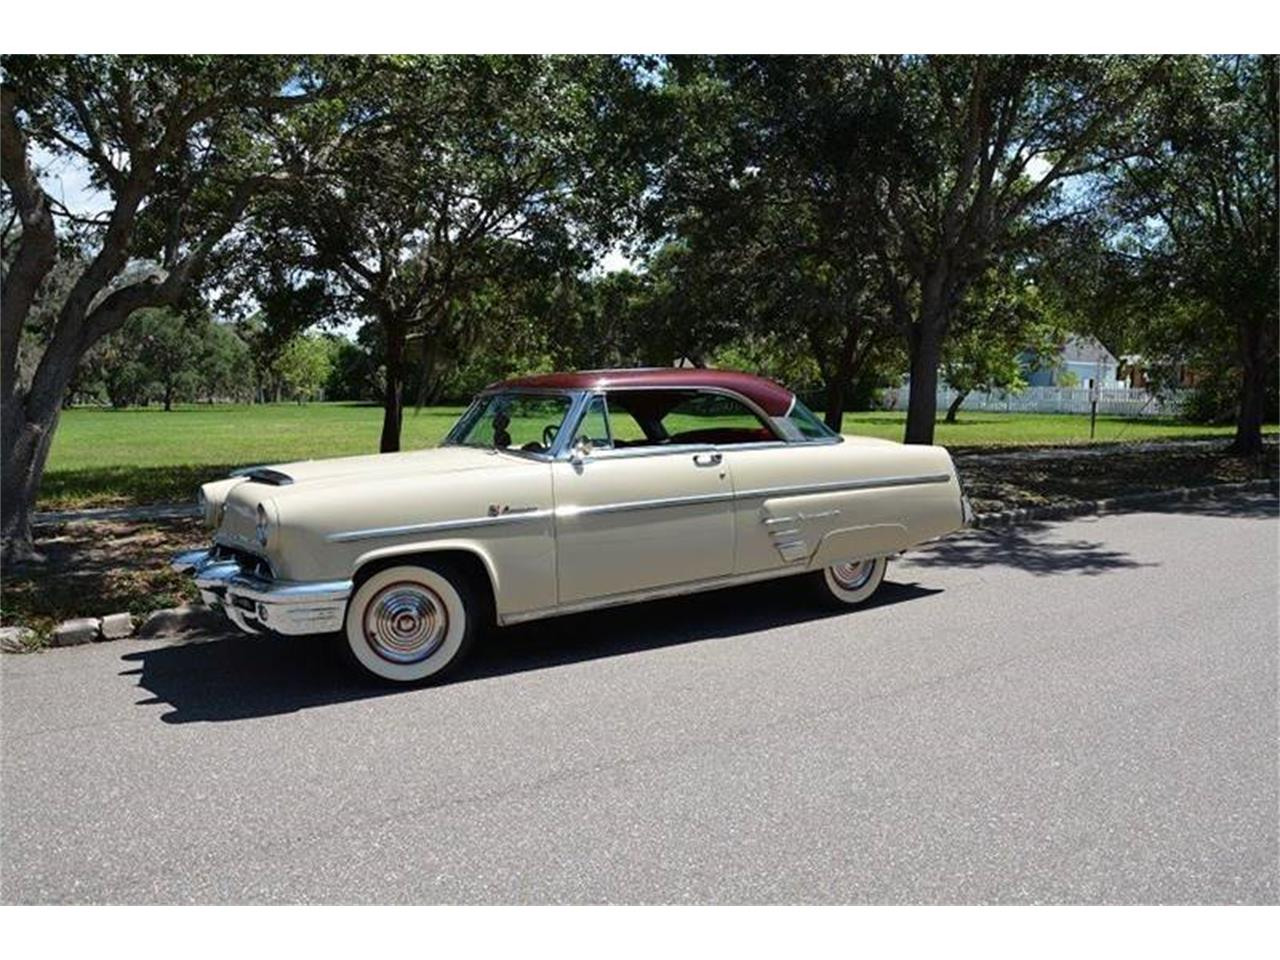 Mercury Monterey For Sale ClassicCarscom CC - Classic car show clearwater fl